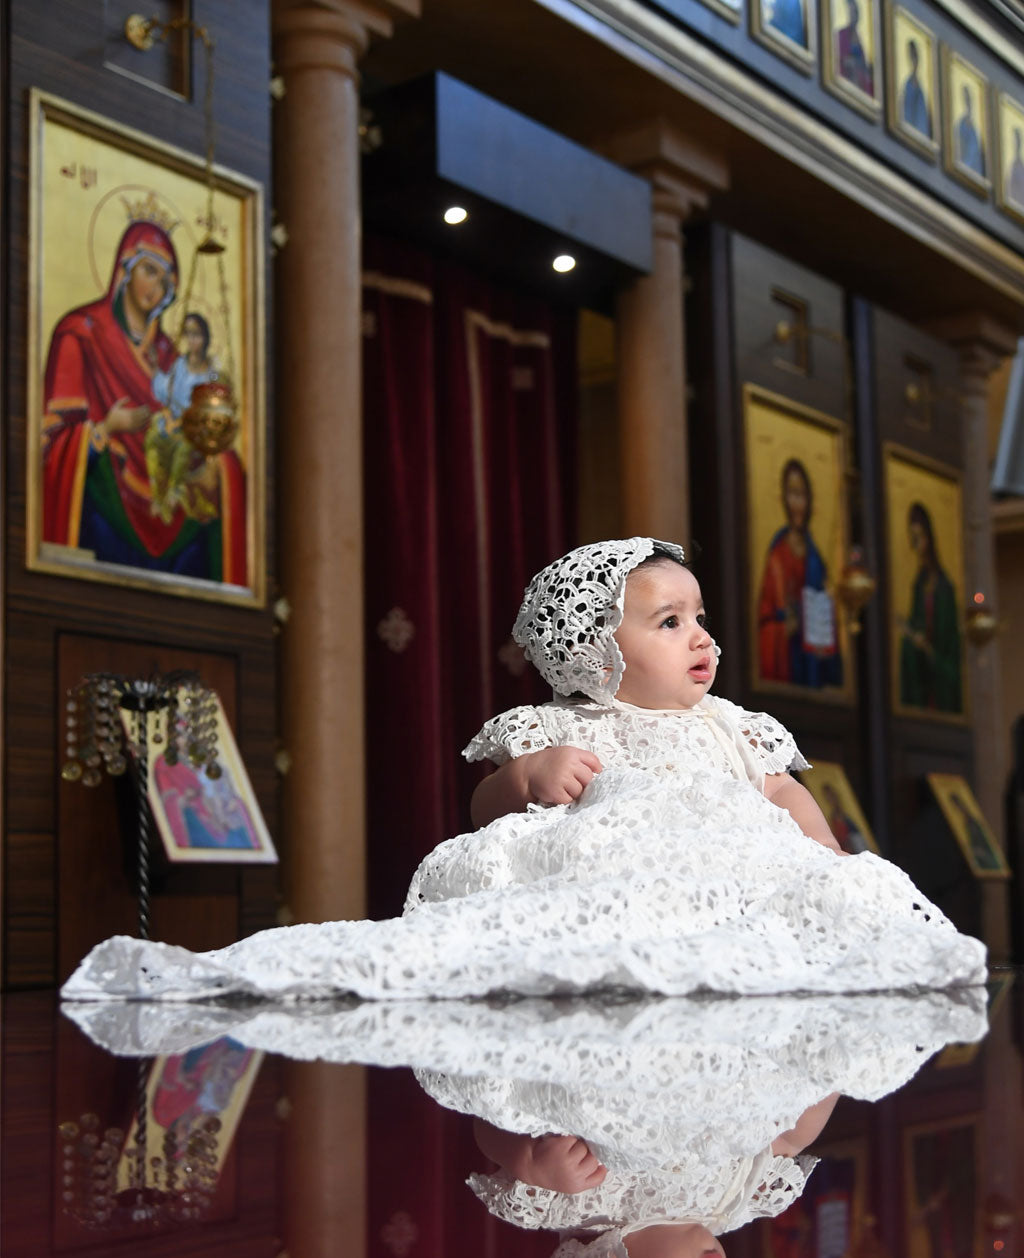 Zoya's Baptism Photos | Lola Christening Gown & Bonnet Set